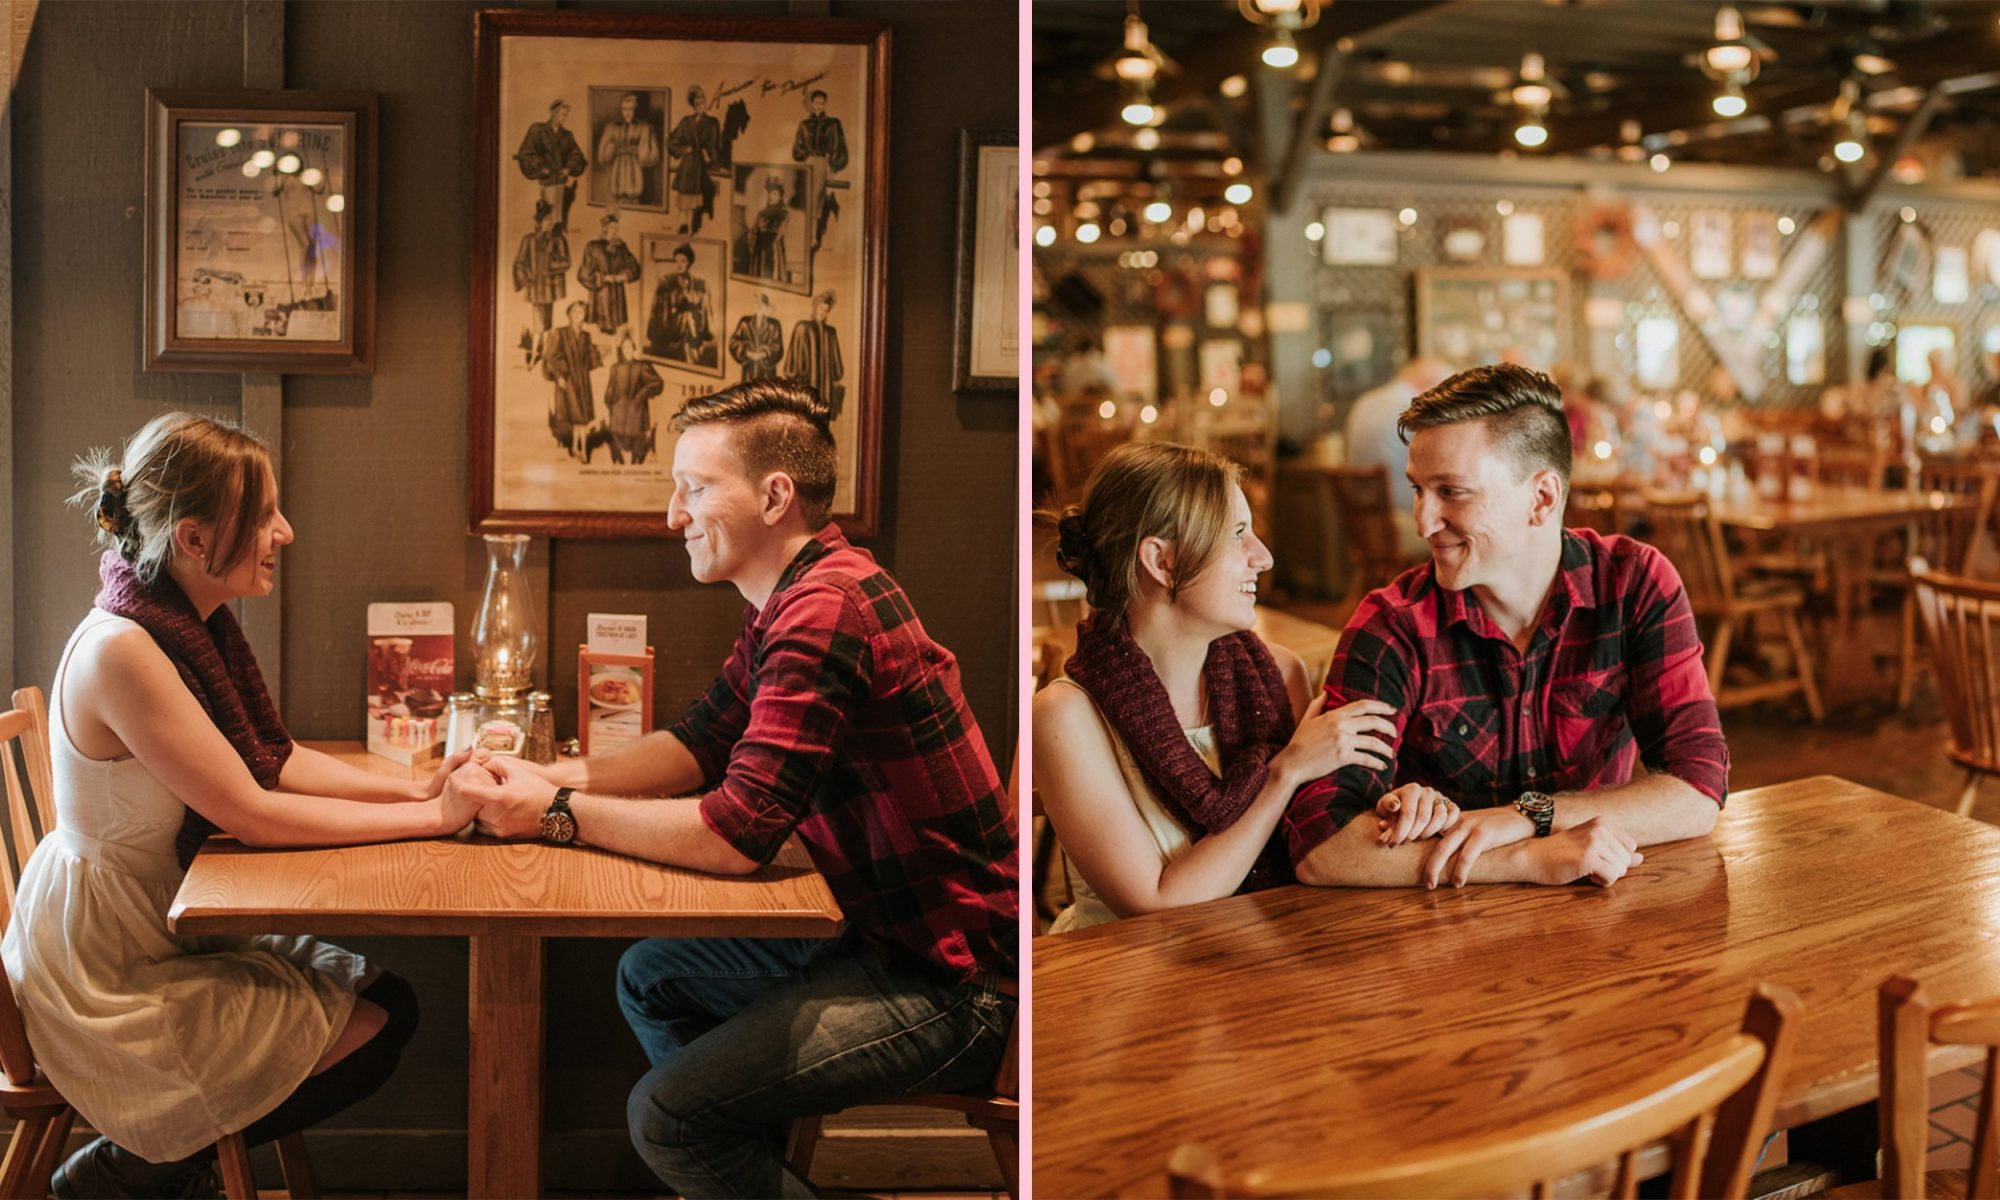 EC: This Couple Shot Their Engagement Photos at a Cracker Barrel